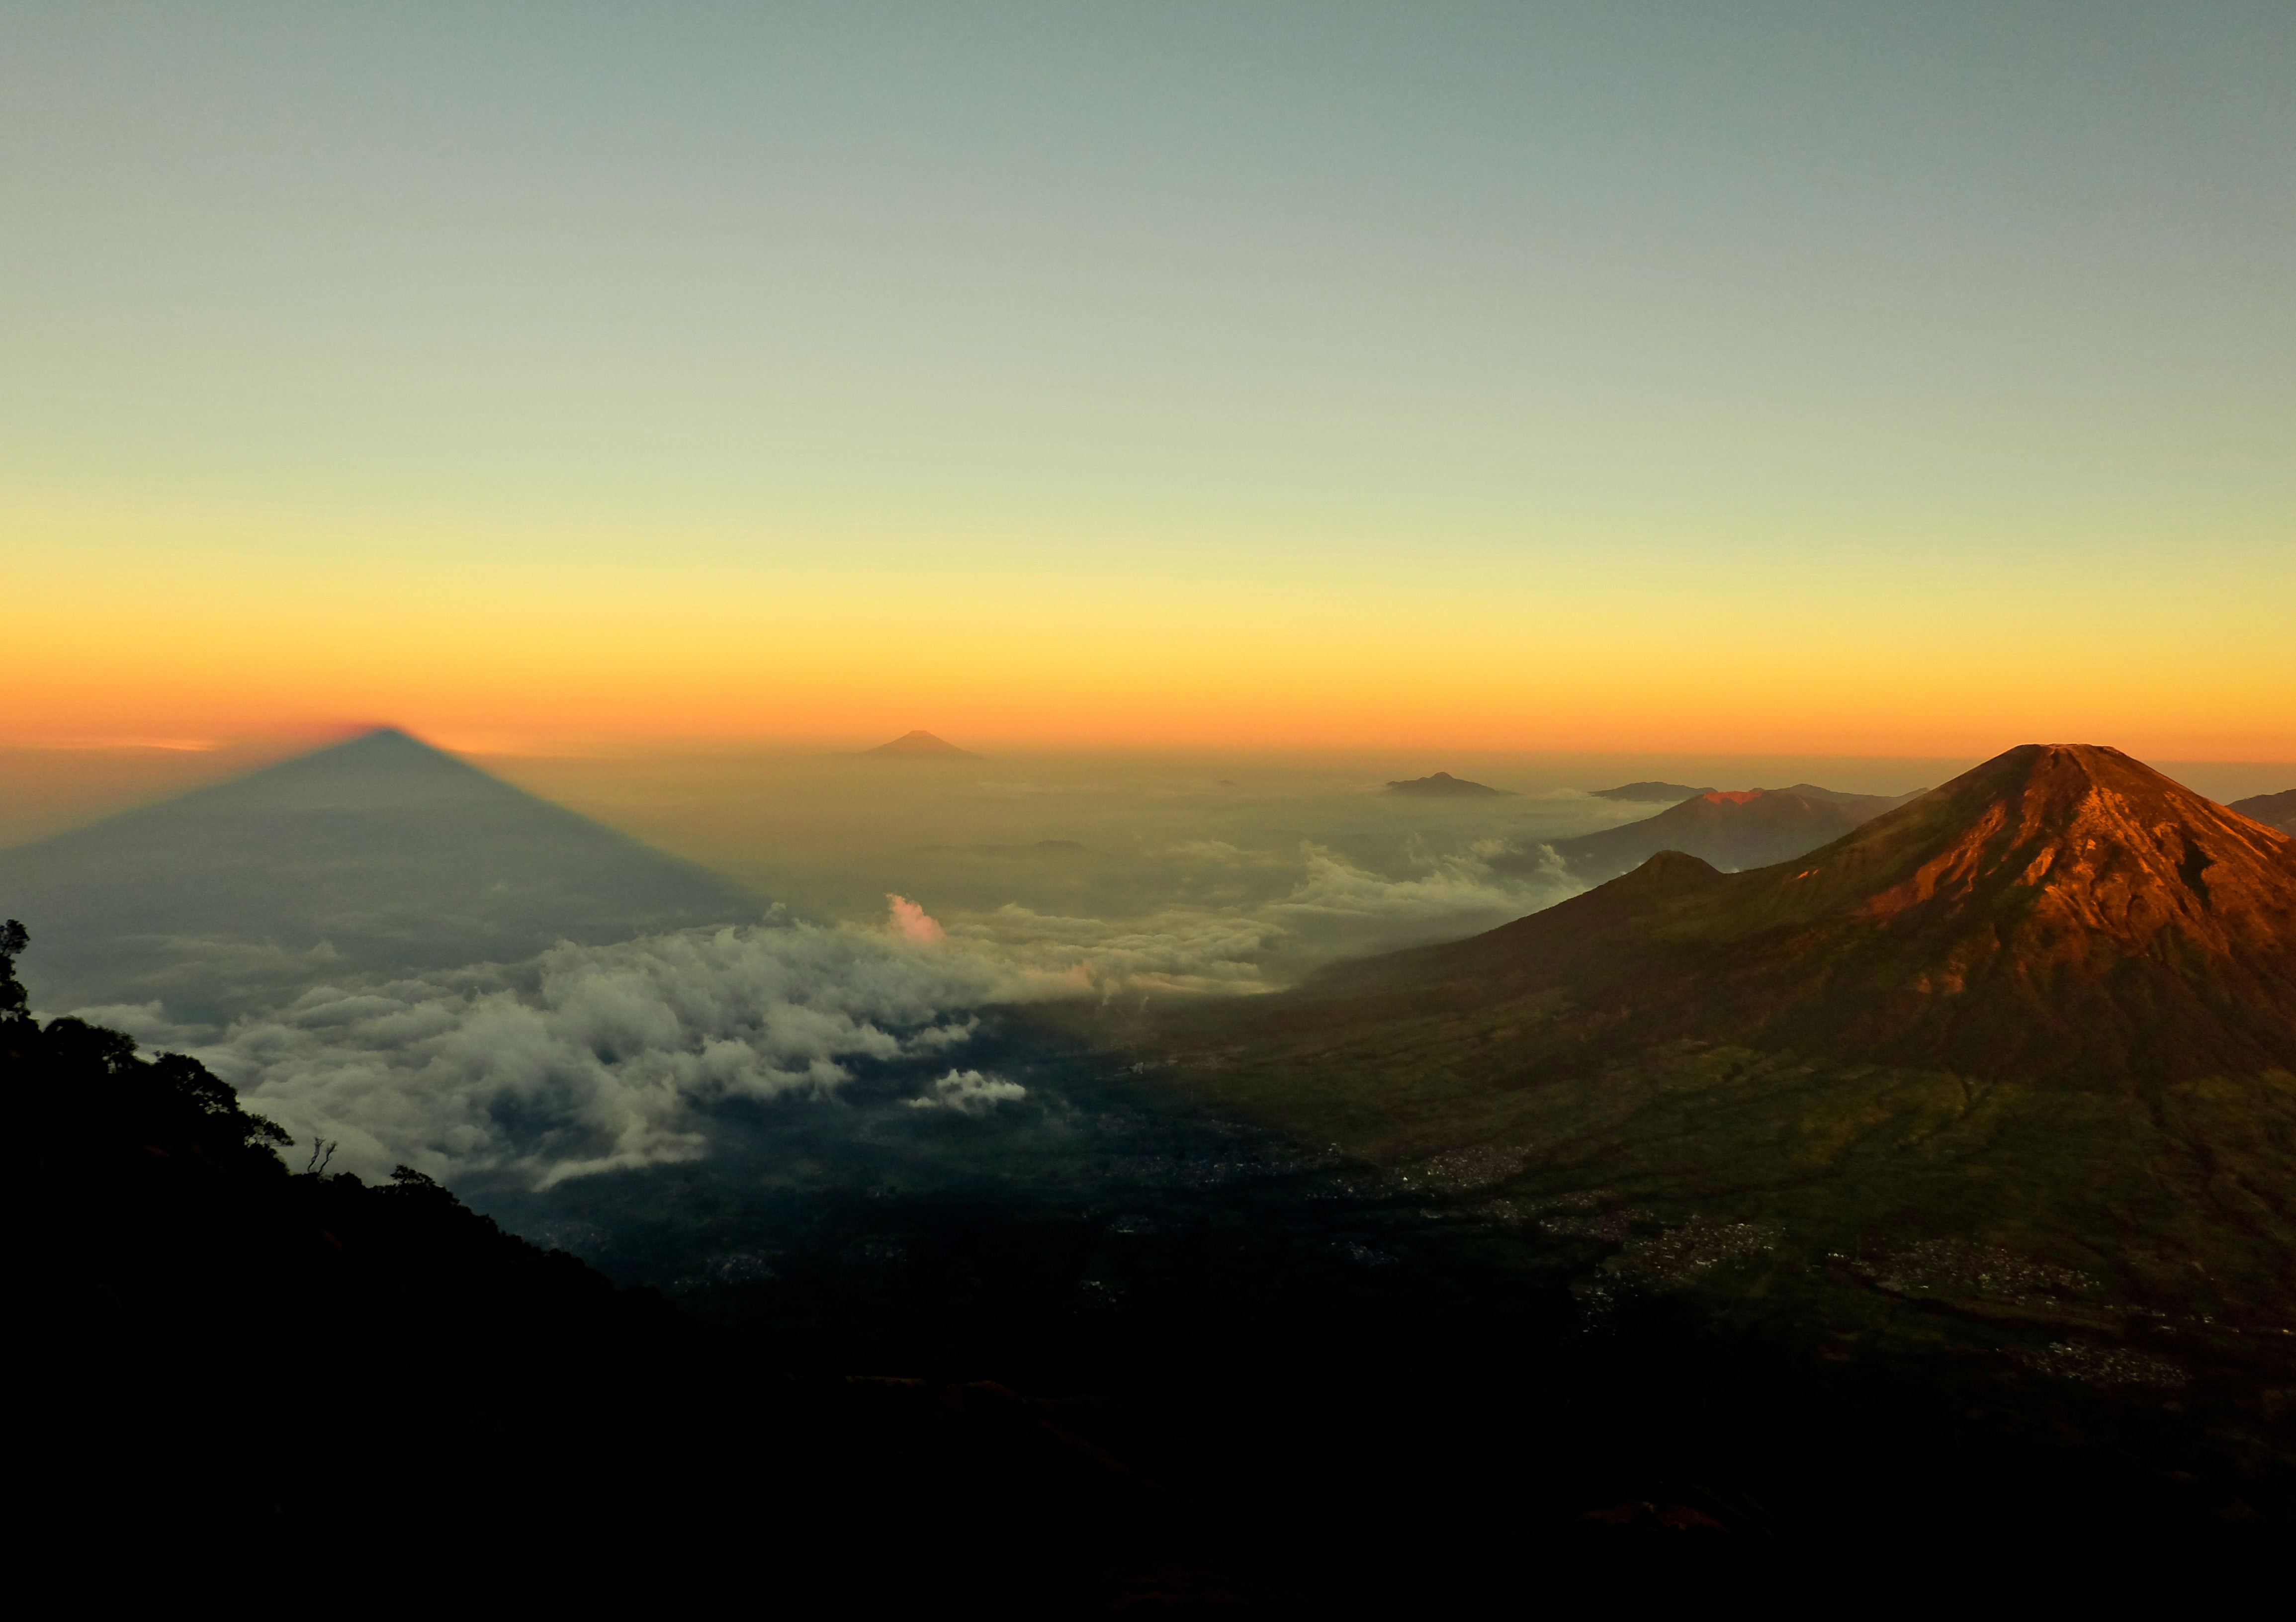 Volcanoes with sunset sky